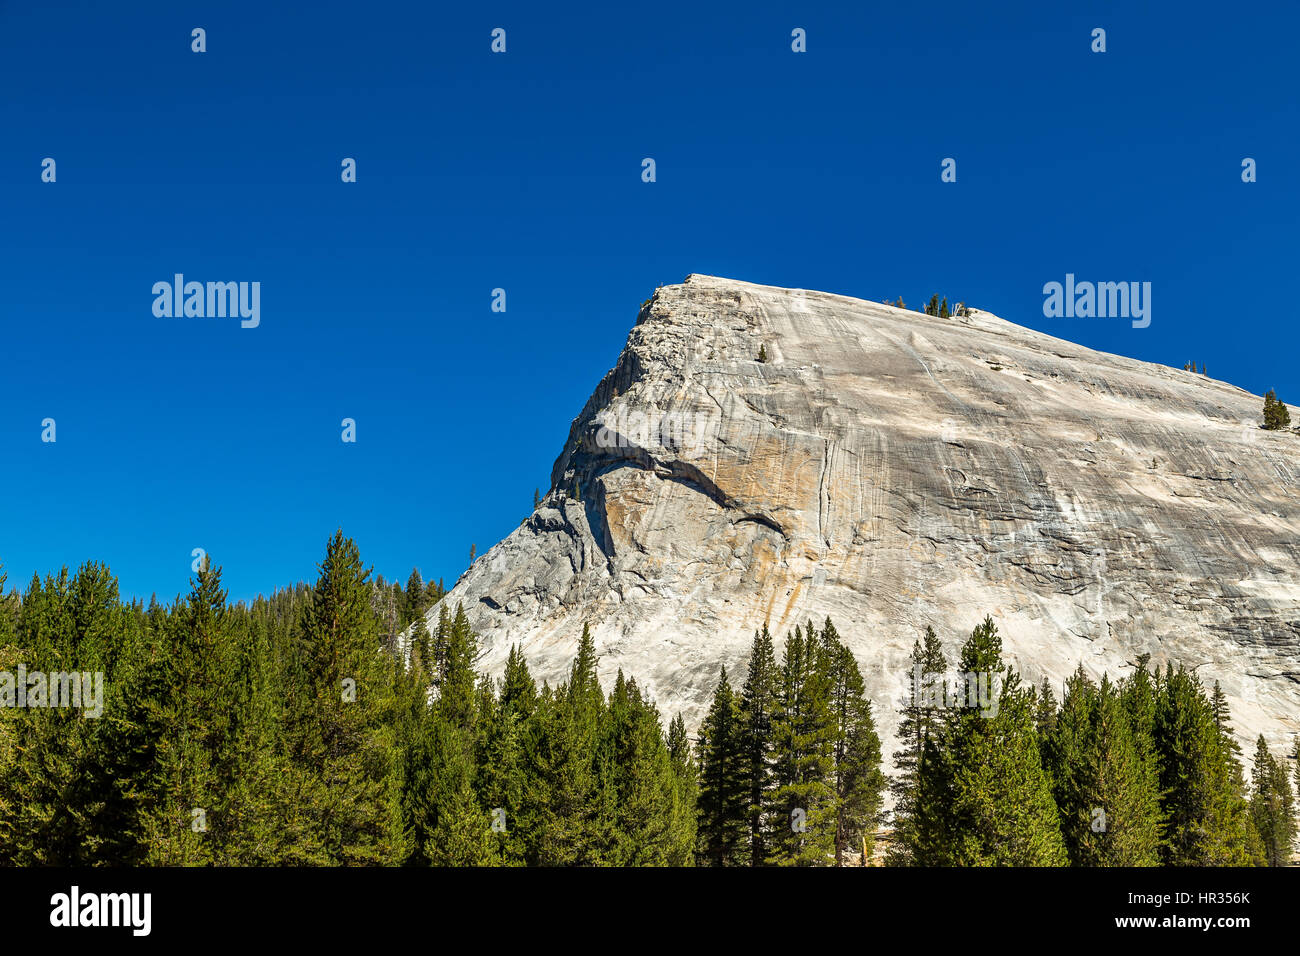 Lembert Dome is a granite dome rock formation in Yosemite National Park in the US state of California. The dome Stock Photo